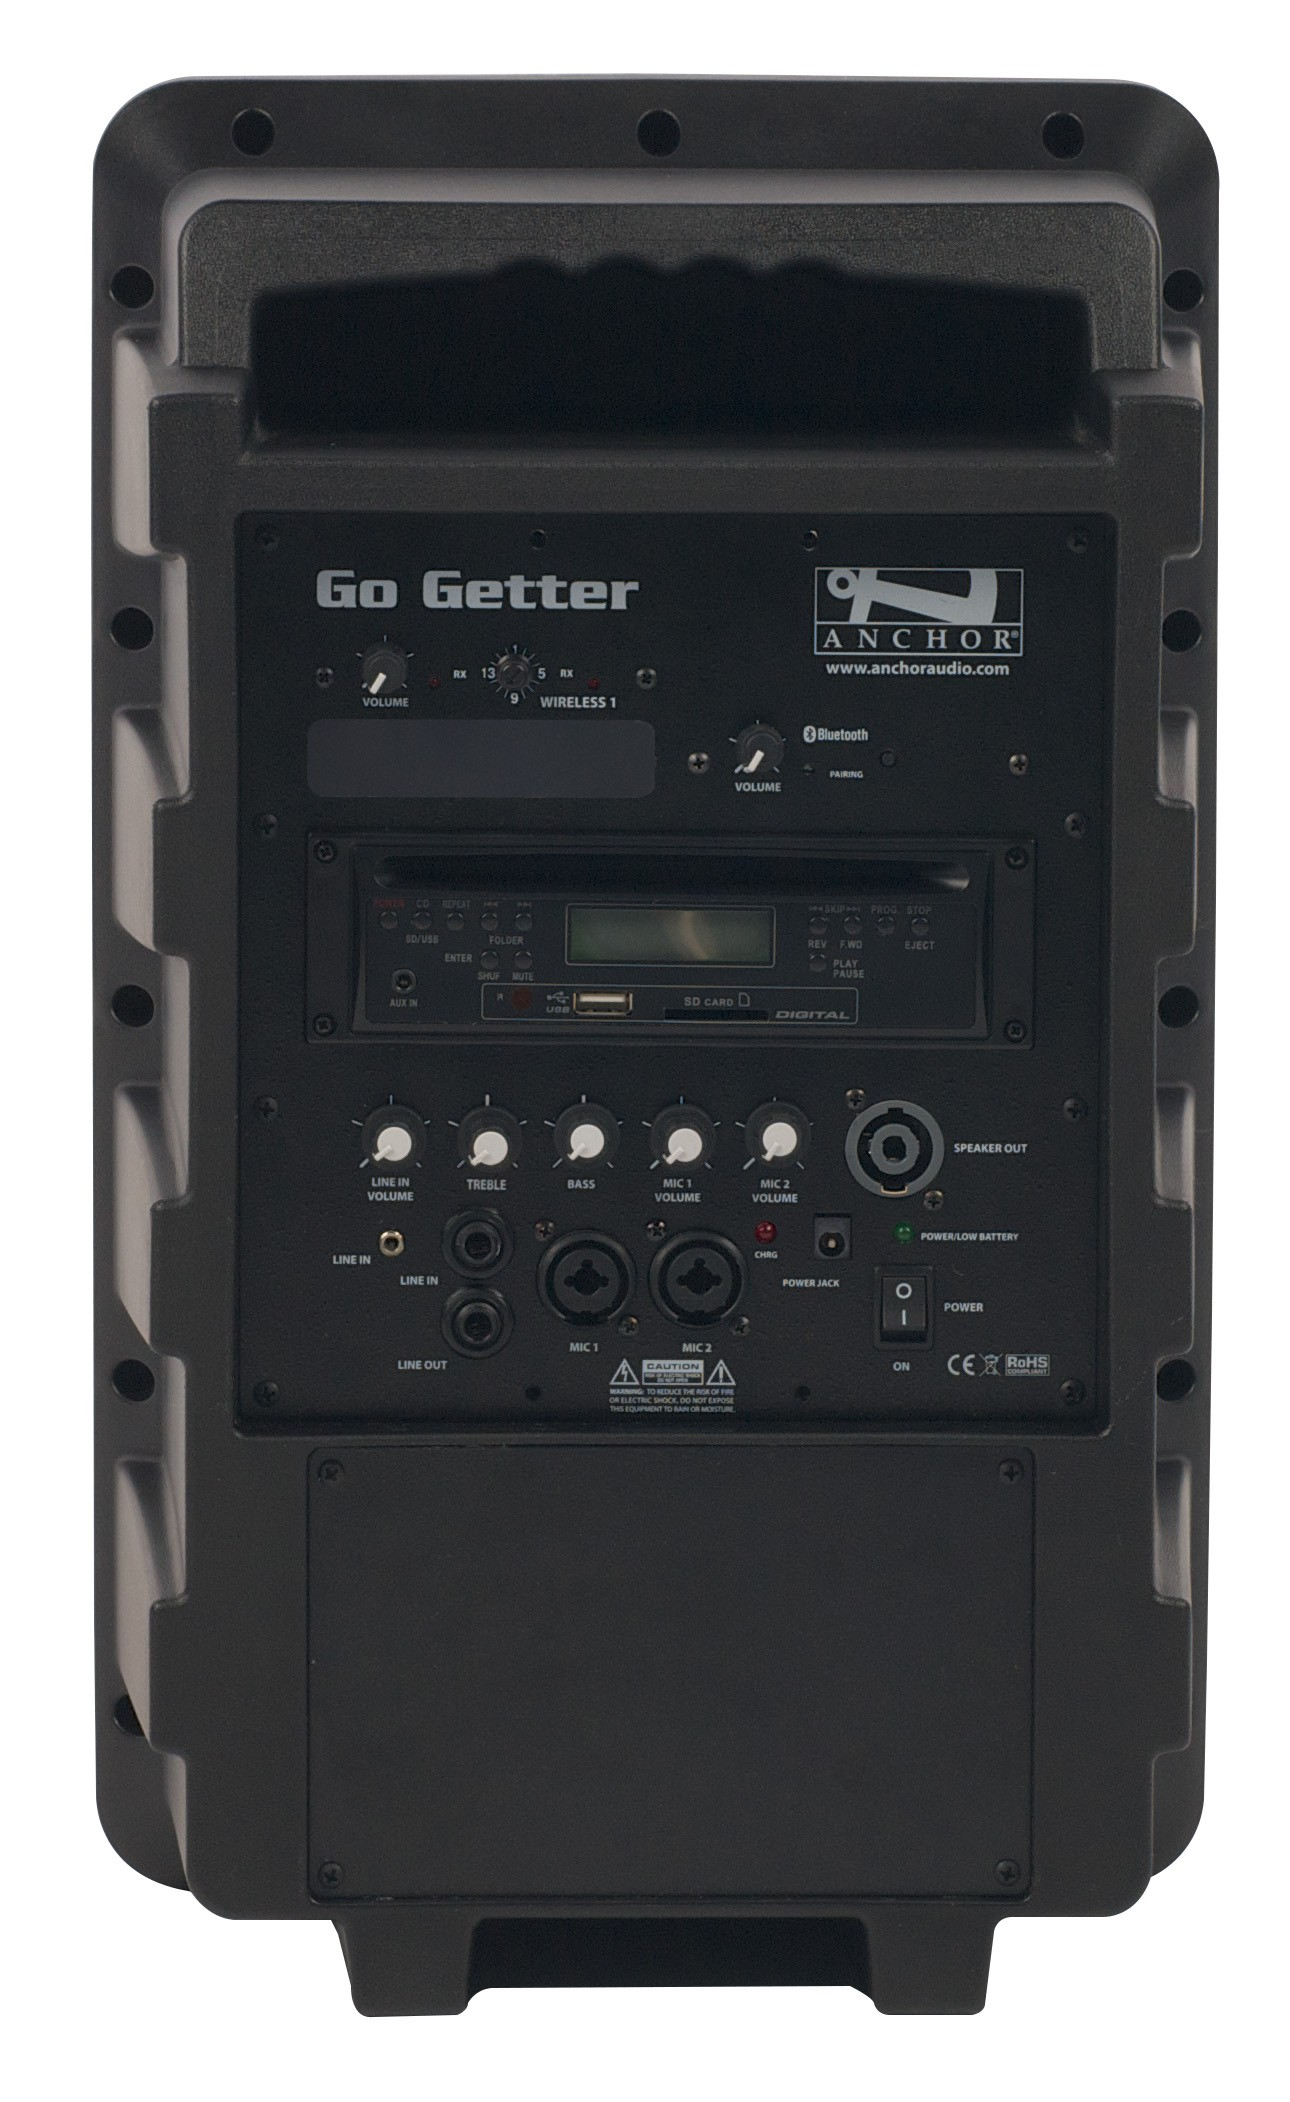 Anchor Audio GG-8000CU1 Go Getter with Bluetooth, CD/MP3 combo player & one wireless receiver